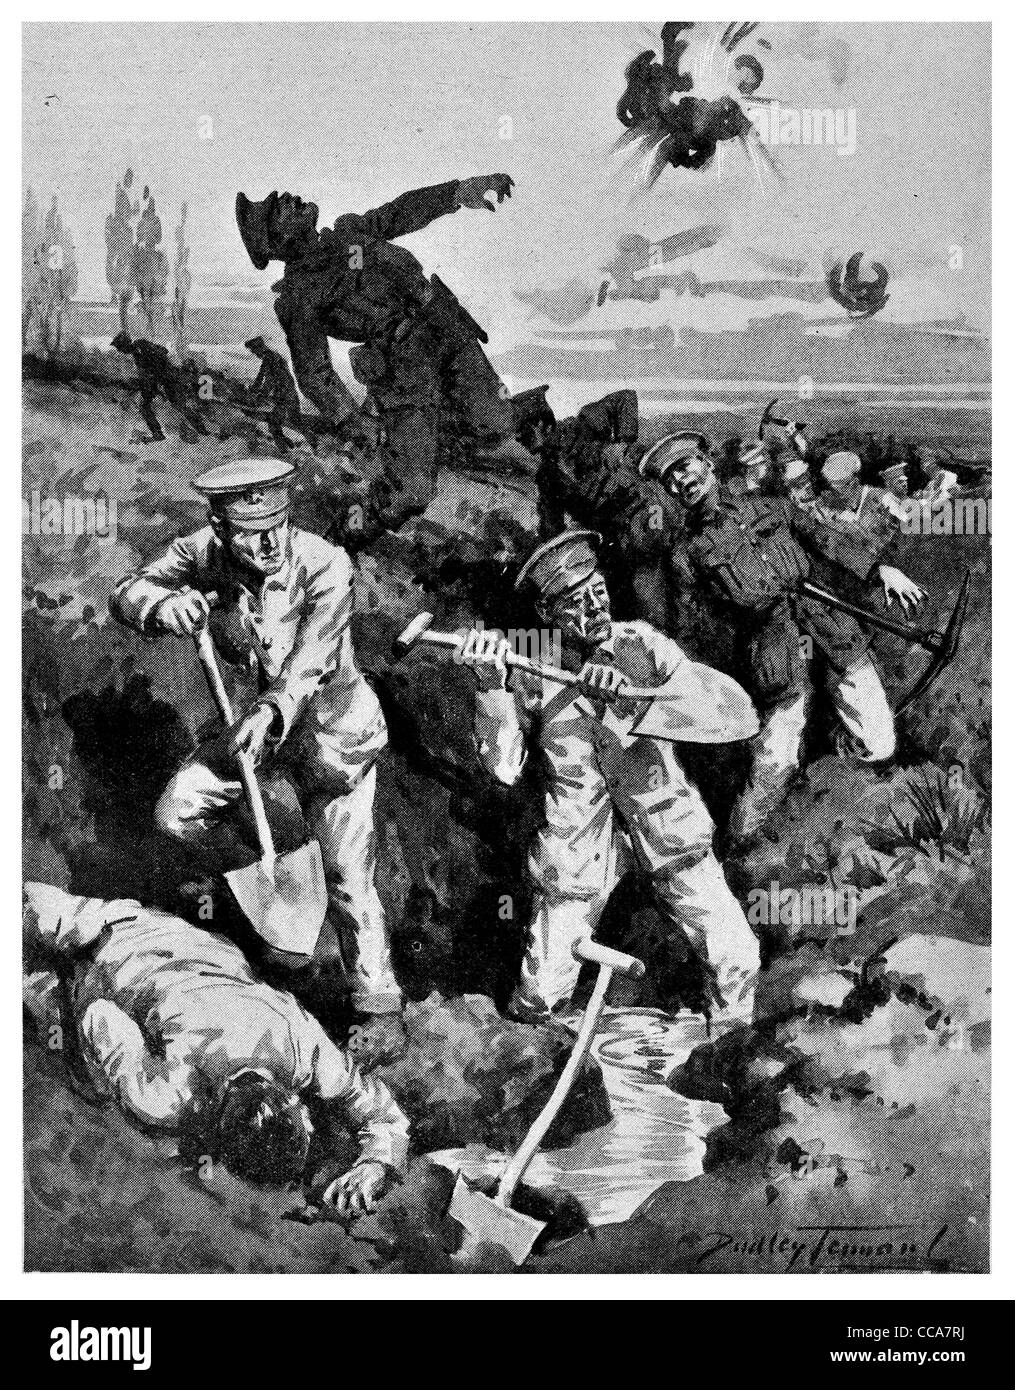 1915 Heroes Lord Kitchener's old regiment British Army Trench warfare spade shovel pick Axe digging dig grenade - Stock Image